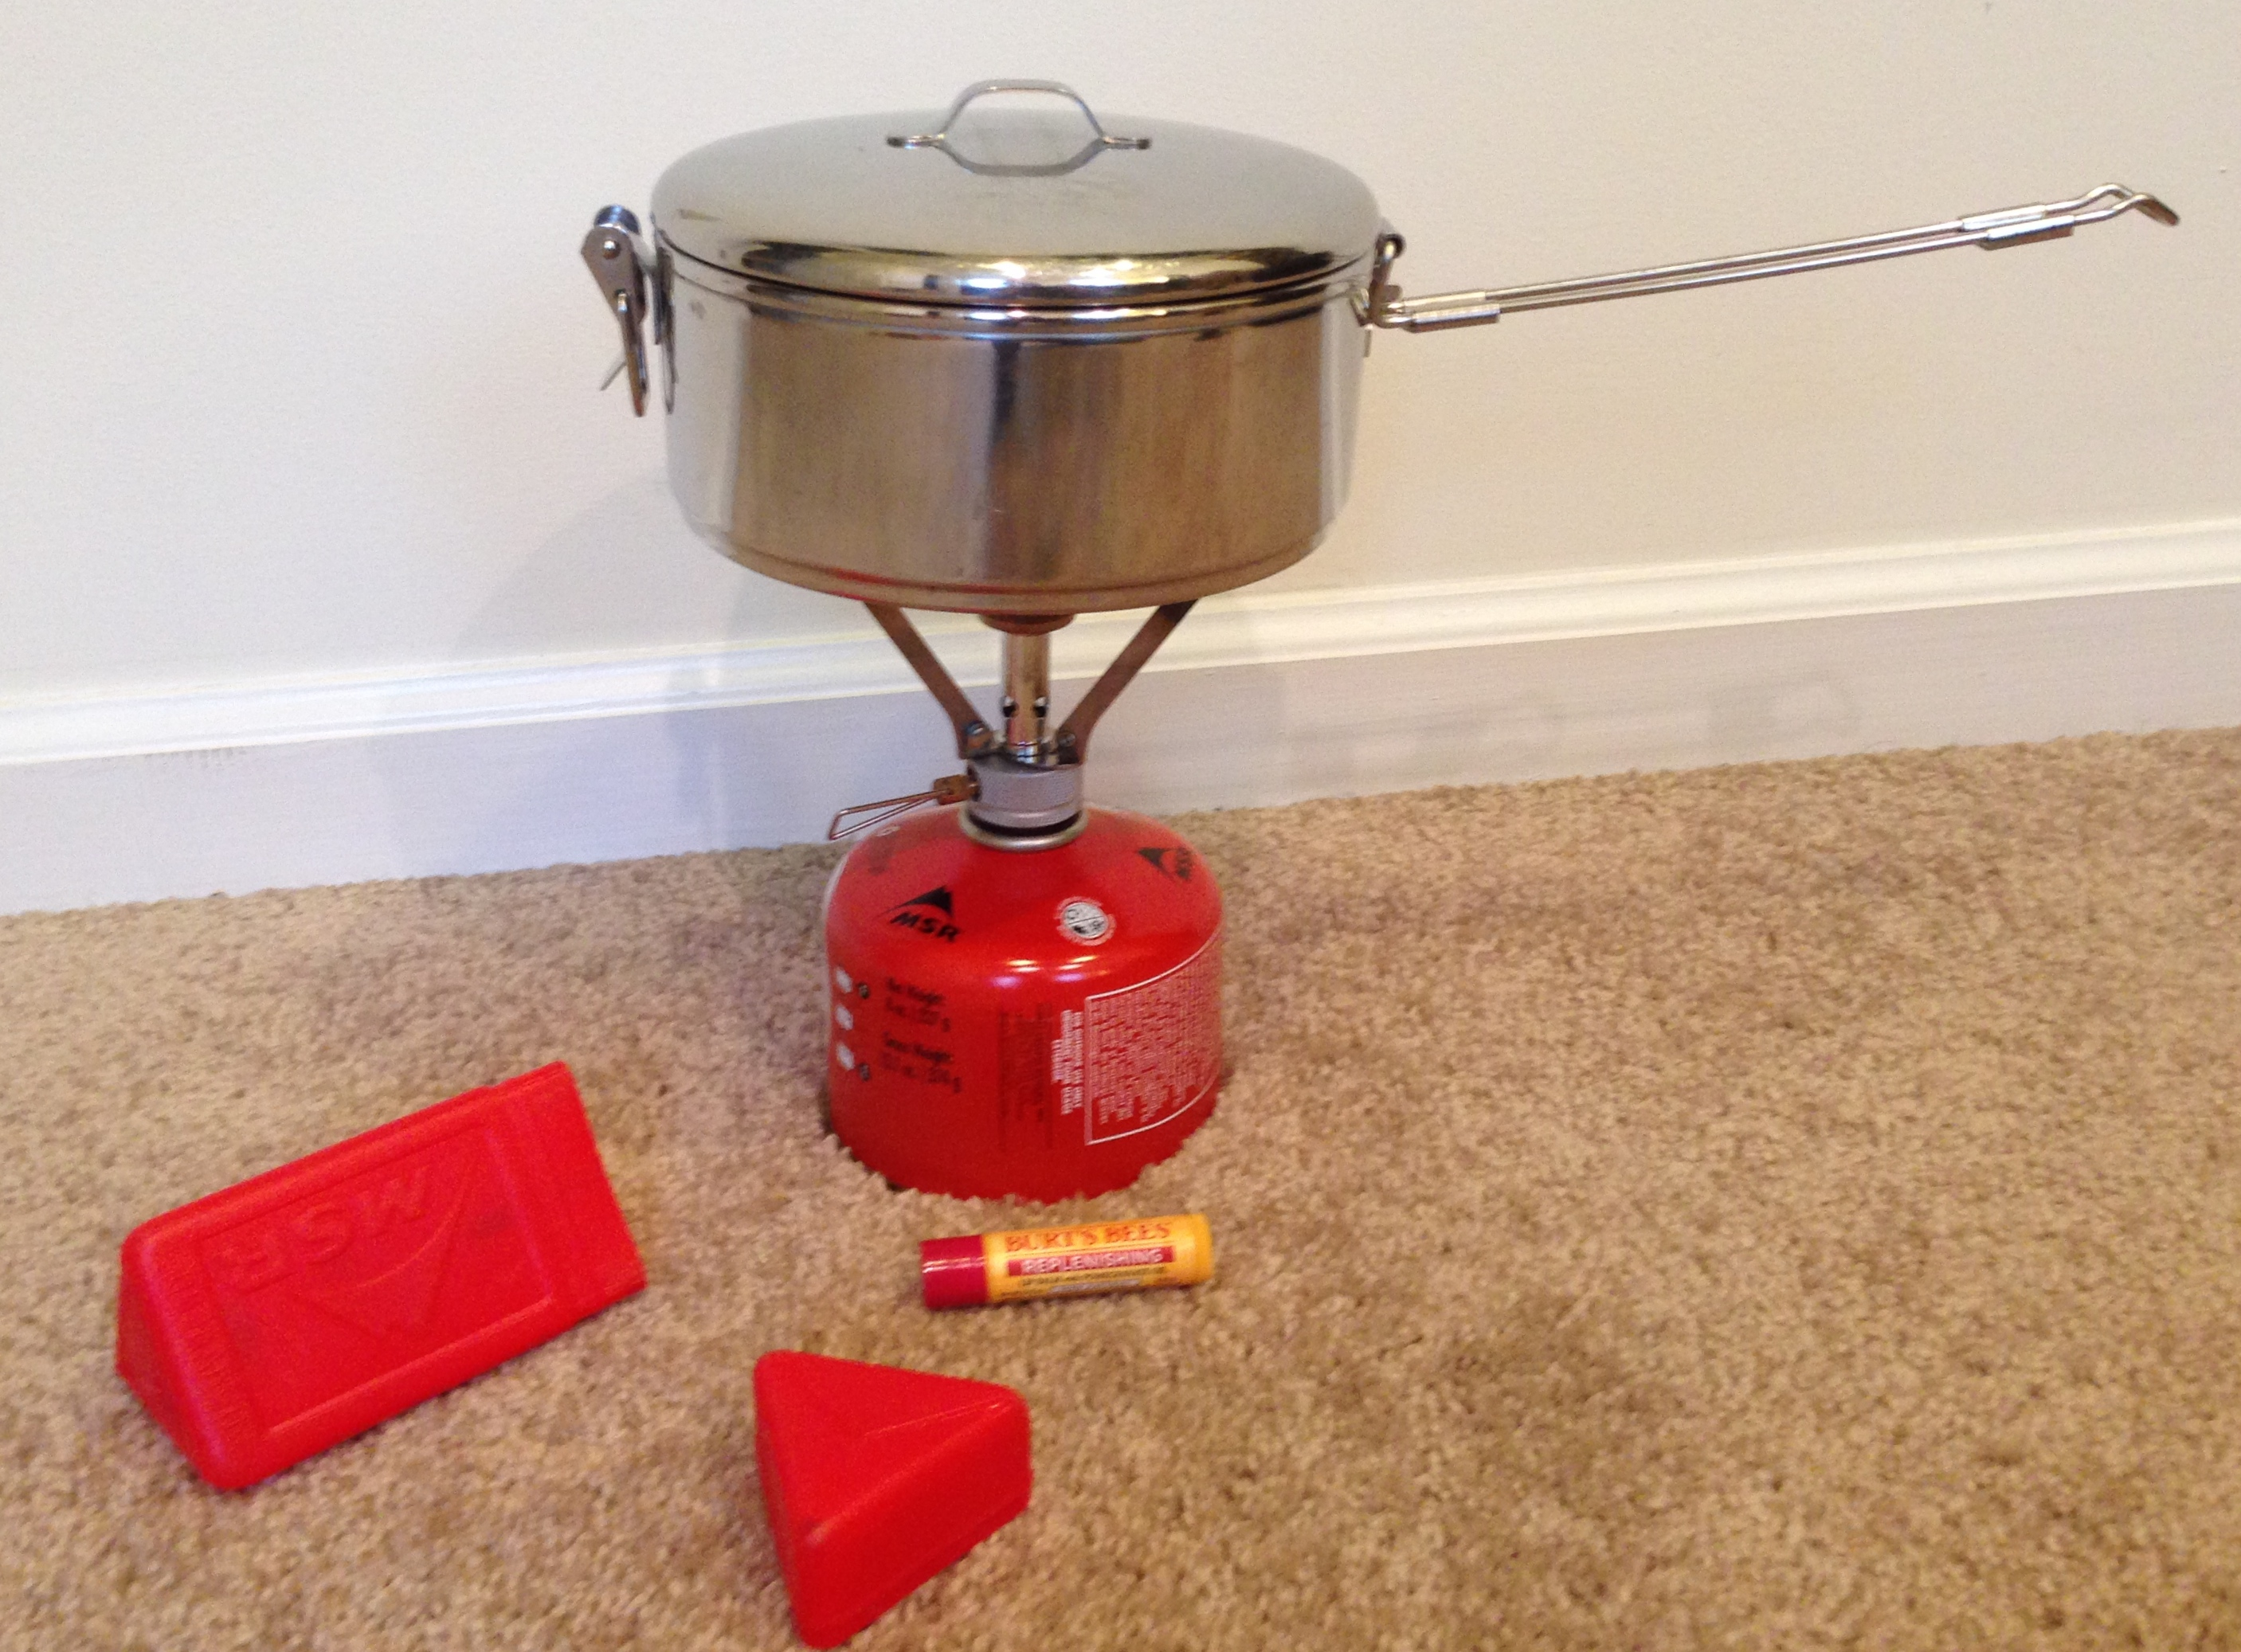 Pot/Stove/Fuel Canister ready for use